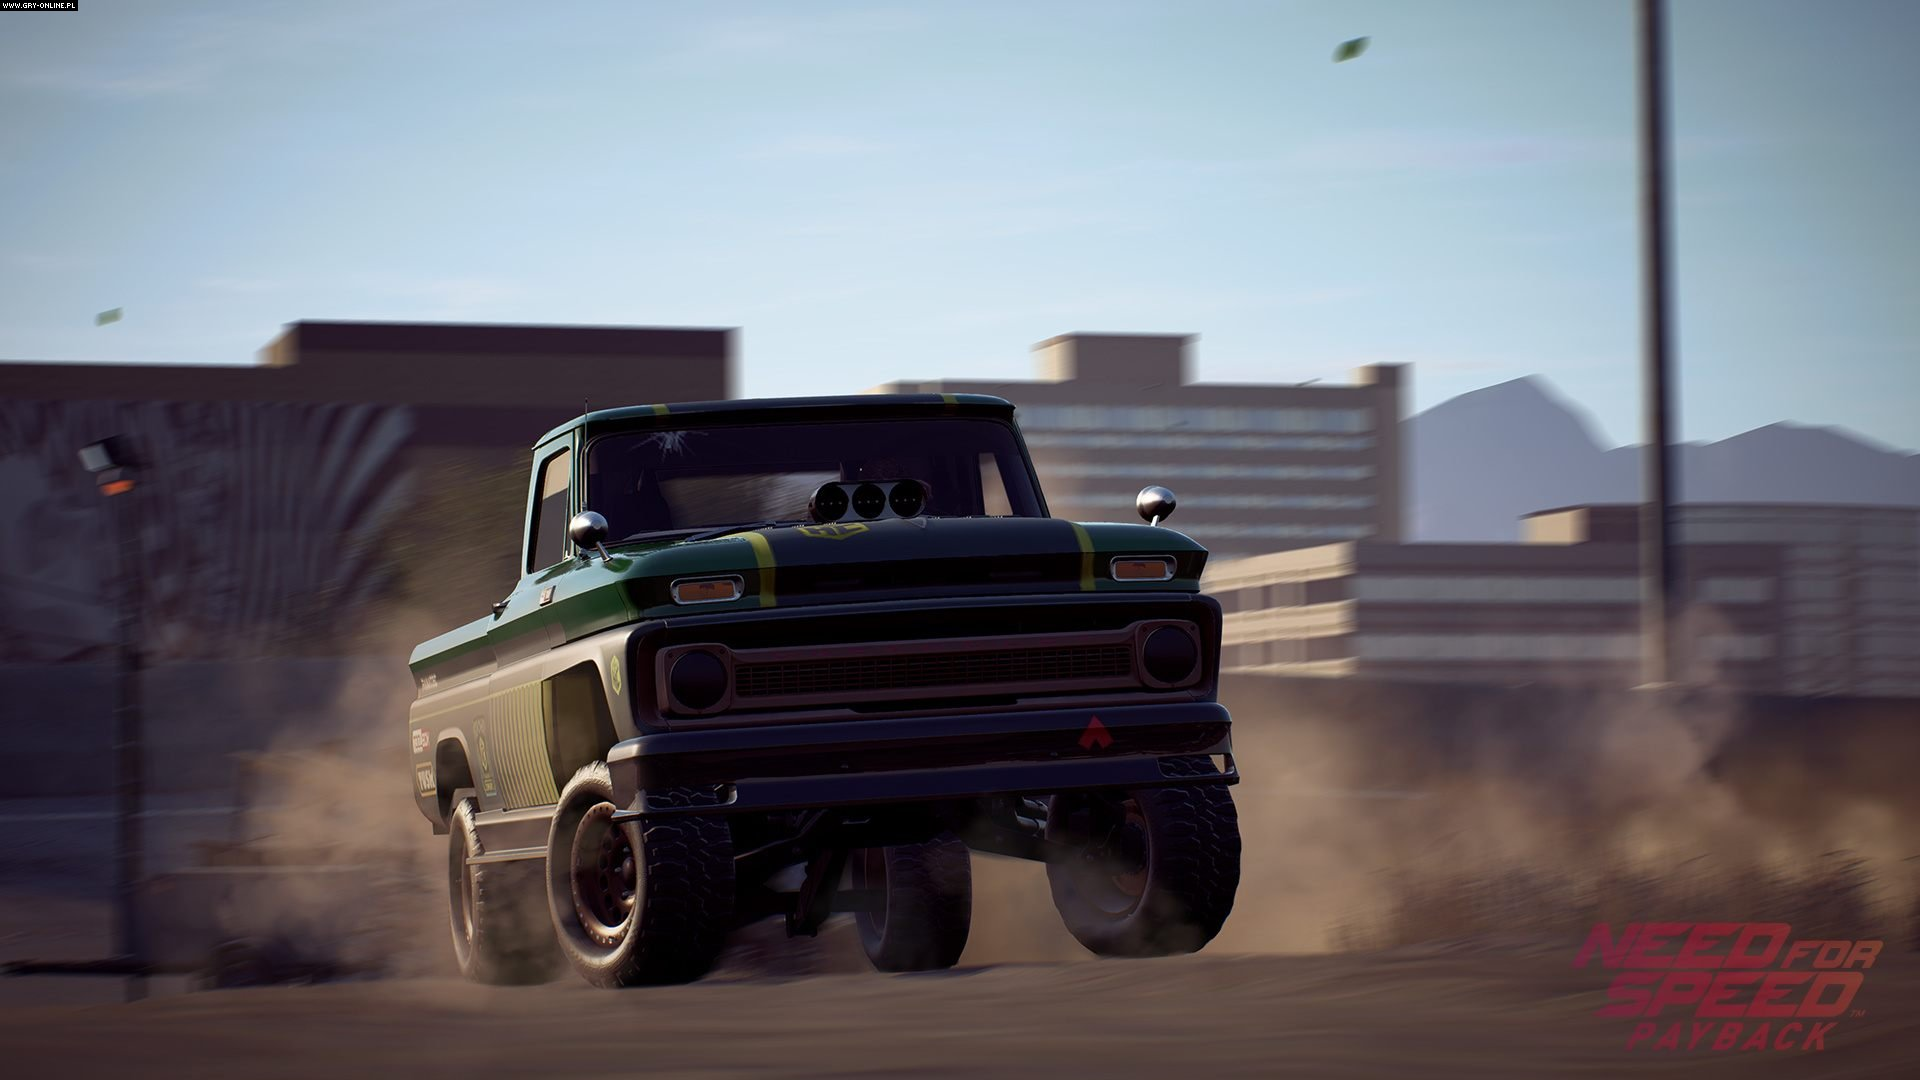 Need for Speed: Payback PC, PS4, XONE Games Image 5/43, Ghost Games, Electronic Arts Inc.